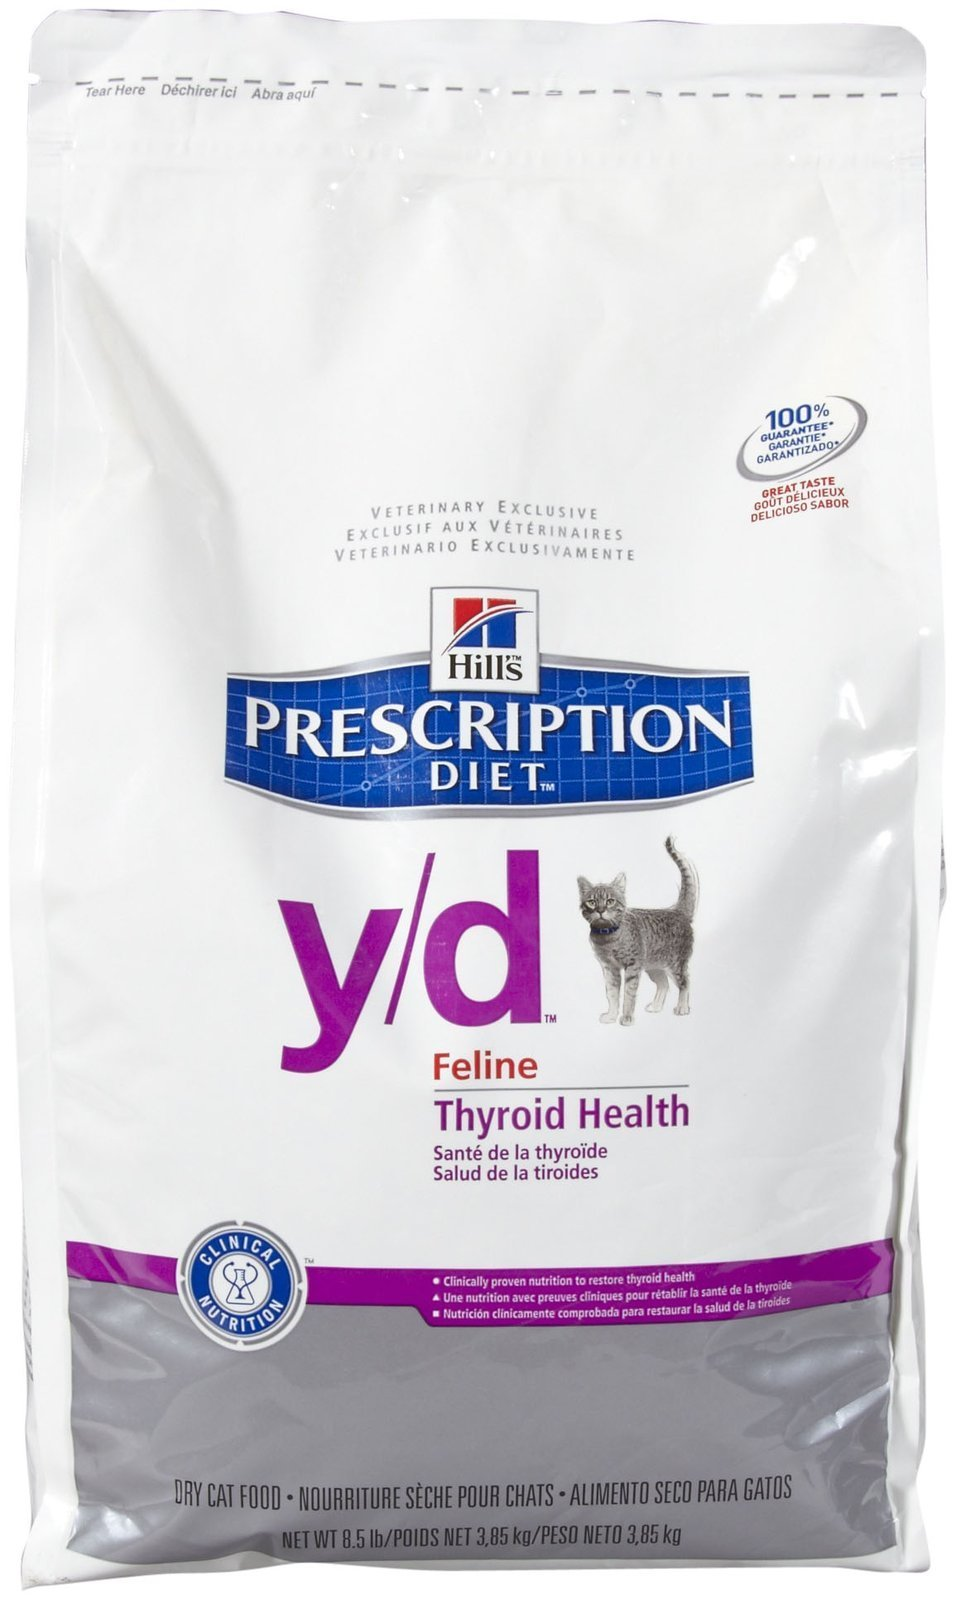 Hill'S Prescription Diet Y/D Feline Thyroid Health Dry Cat Food, 8.5-Lb Bag by HILL'S PRESCRIPTION DIET